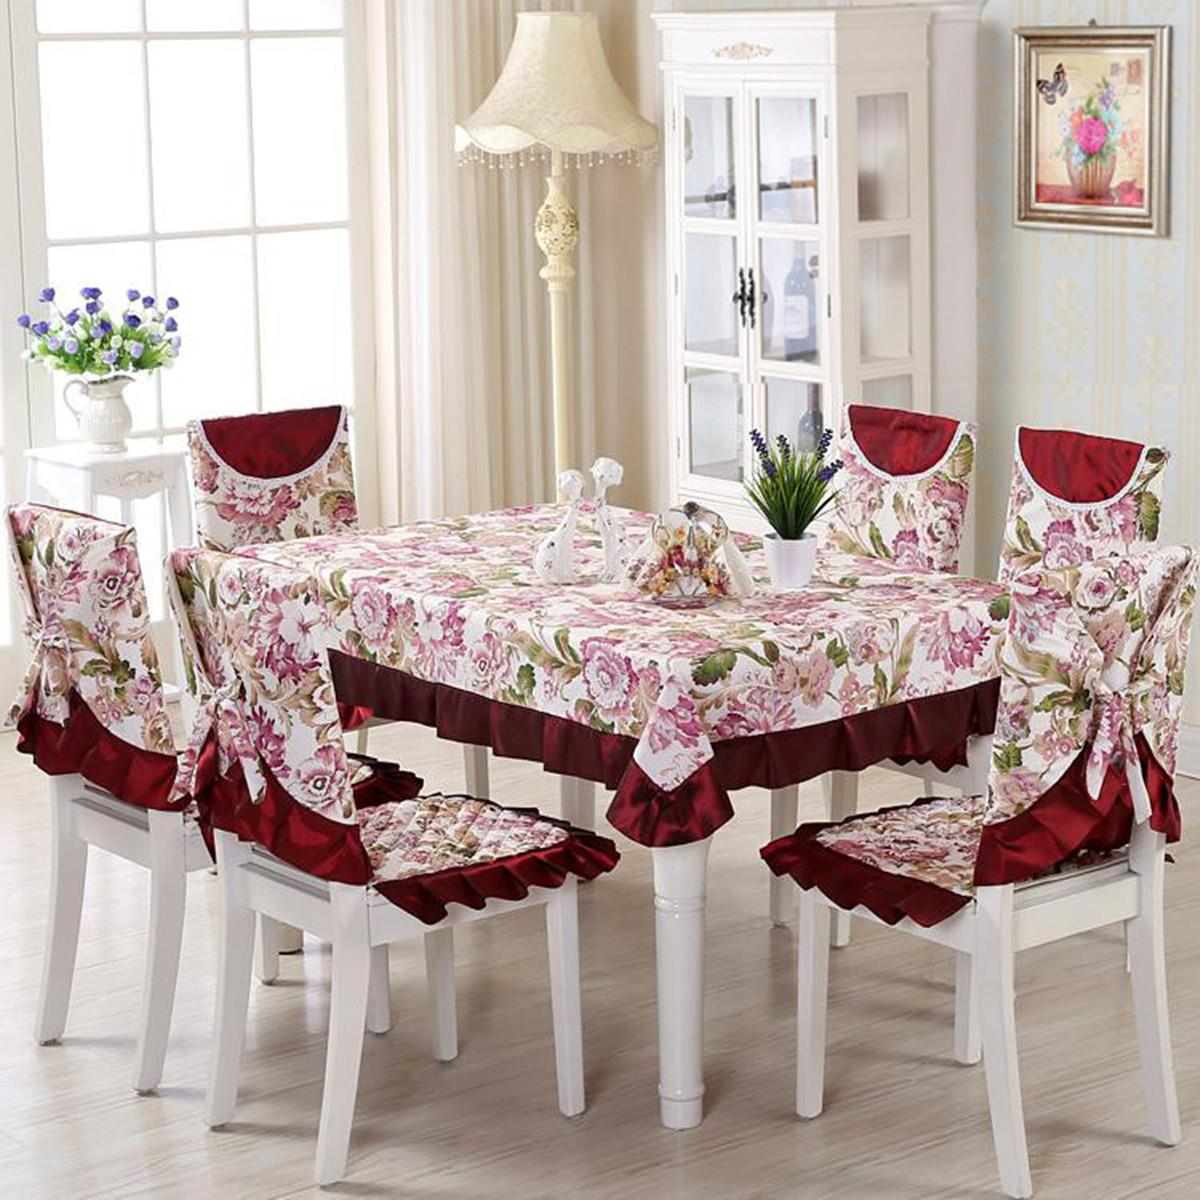 Vintage Polyester Tablecloth 13pcs/set Floral Embroidery Crocheted Table Clothes Chair Cover Home Wedding Decoration(China (Mainland))